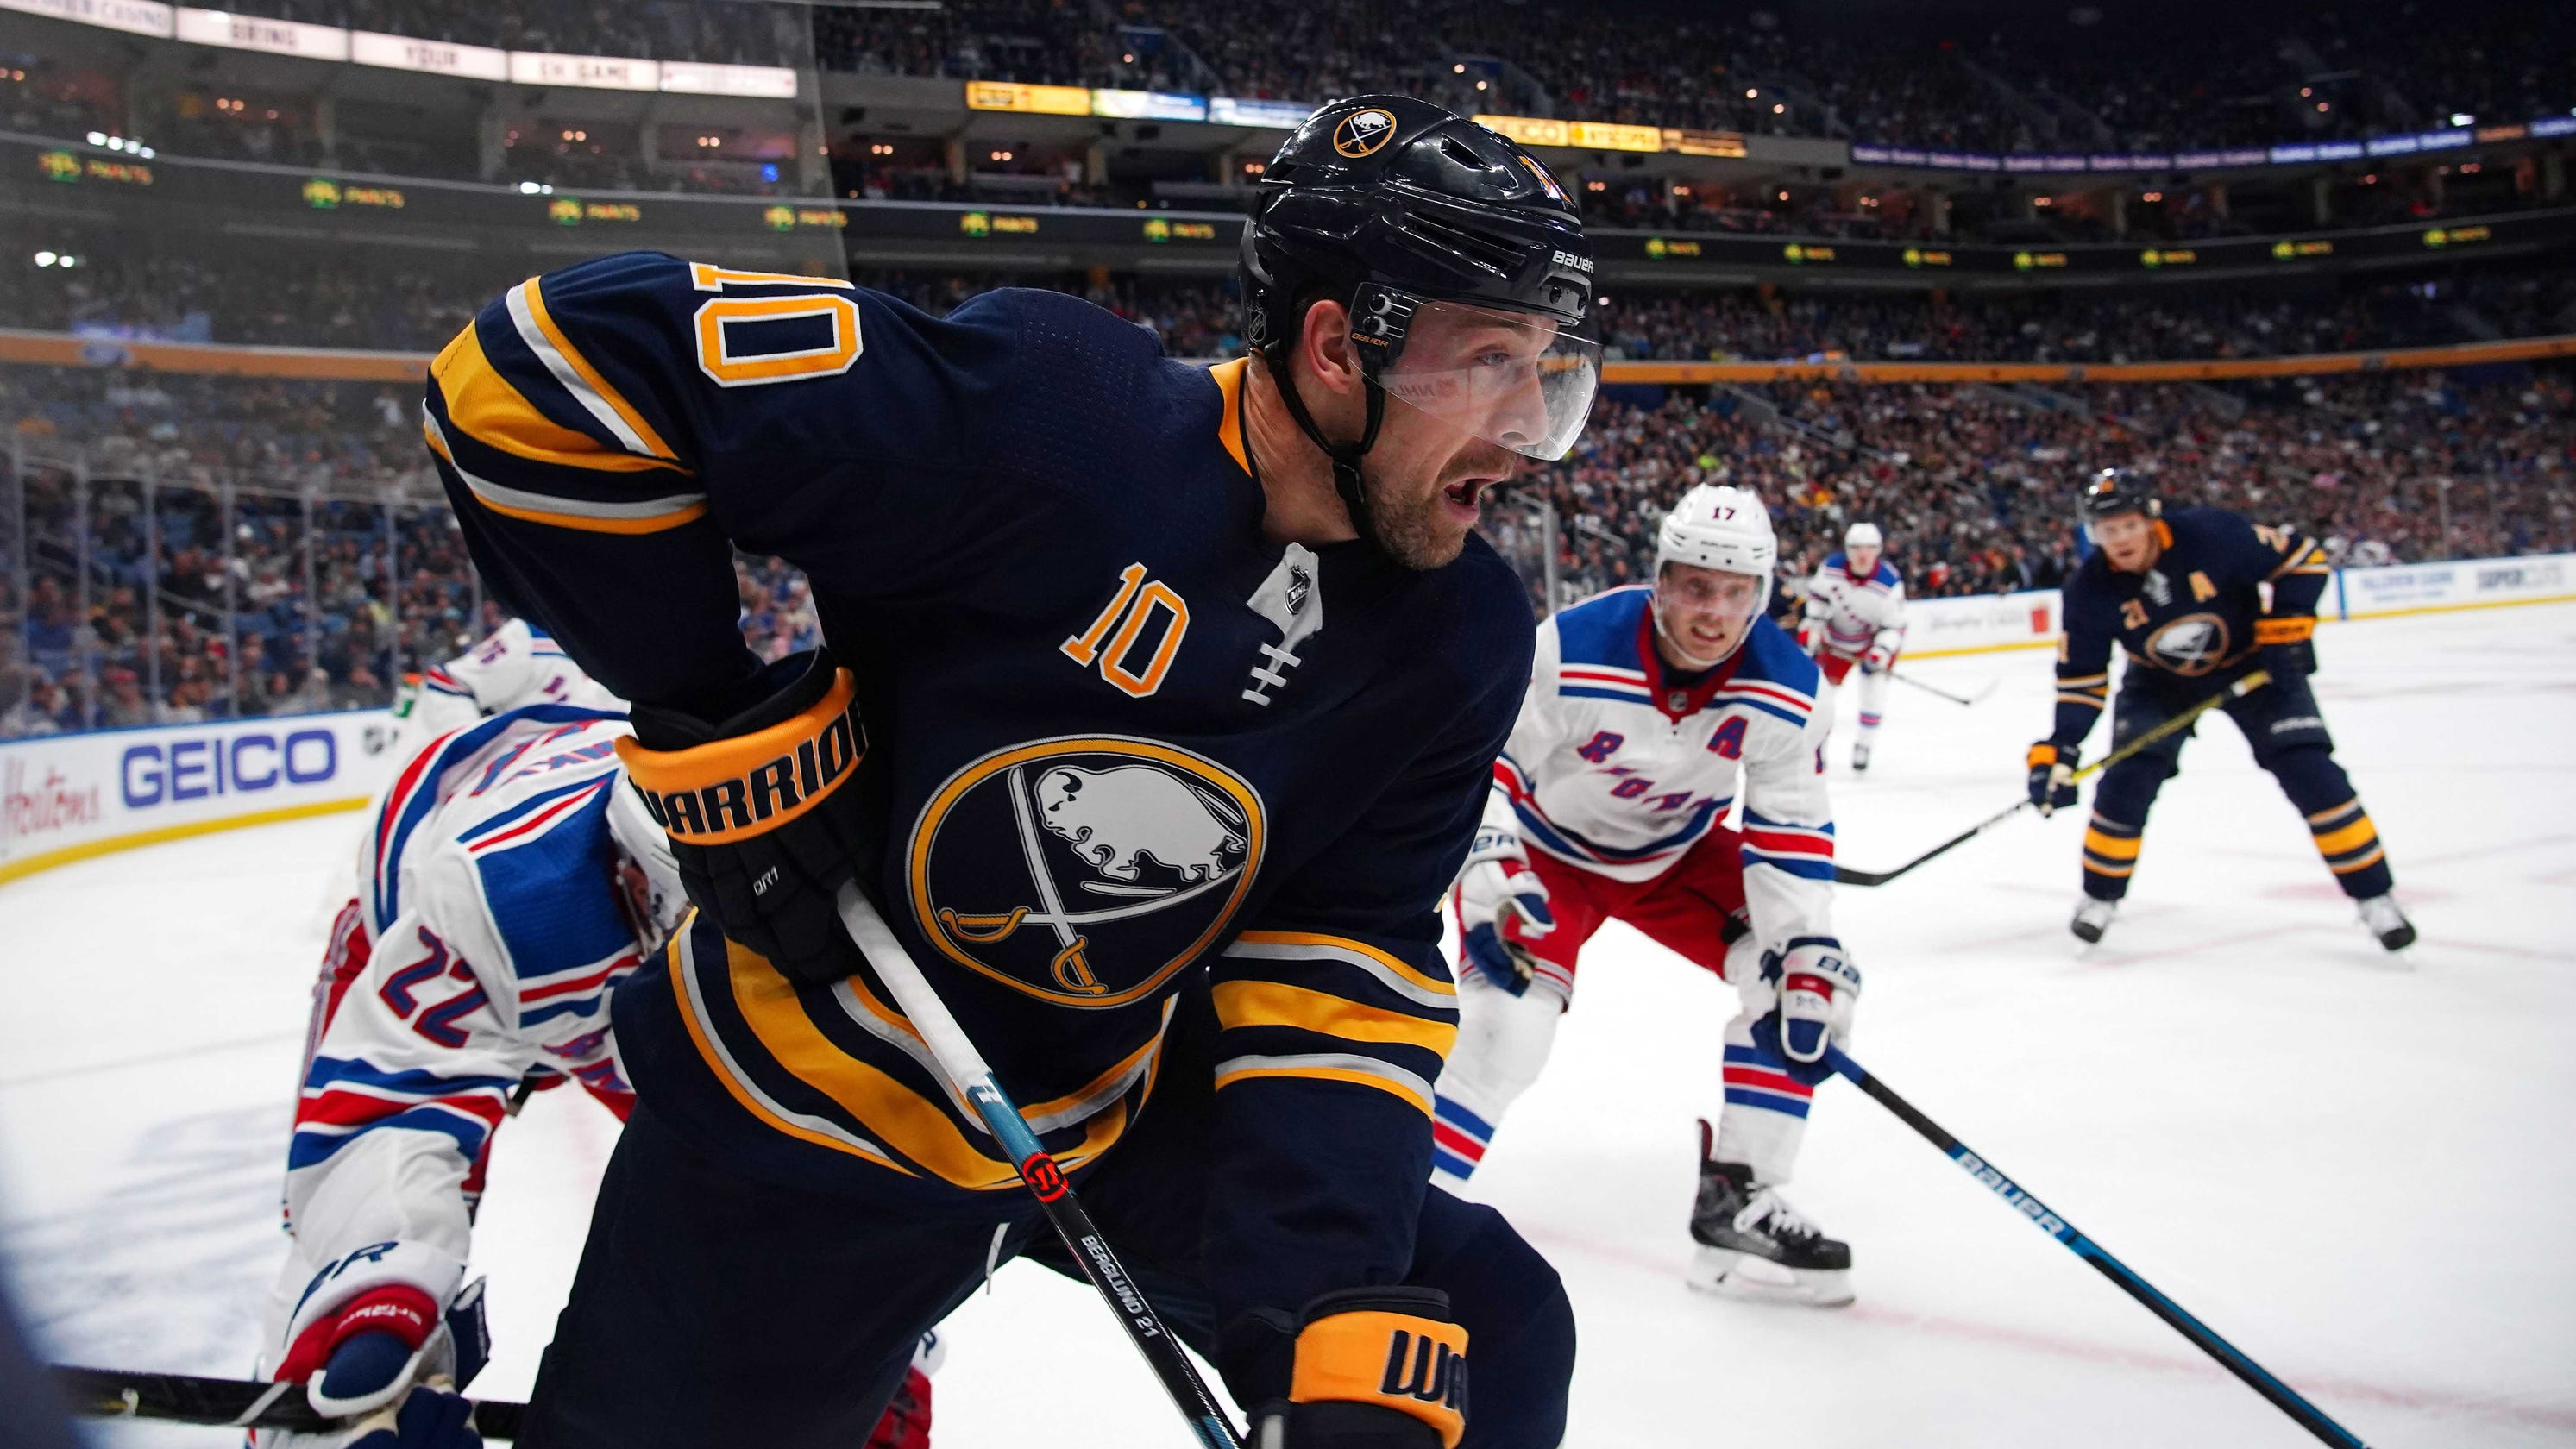 Sabres to terminate suspended player s contract 5f4a644d1e2